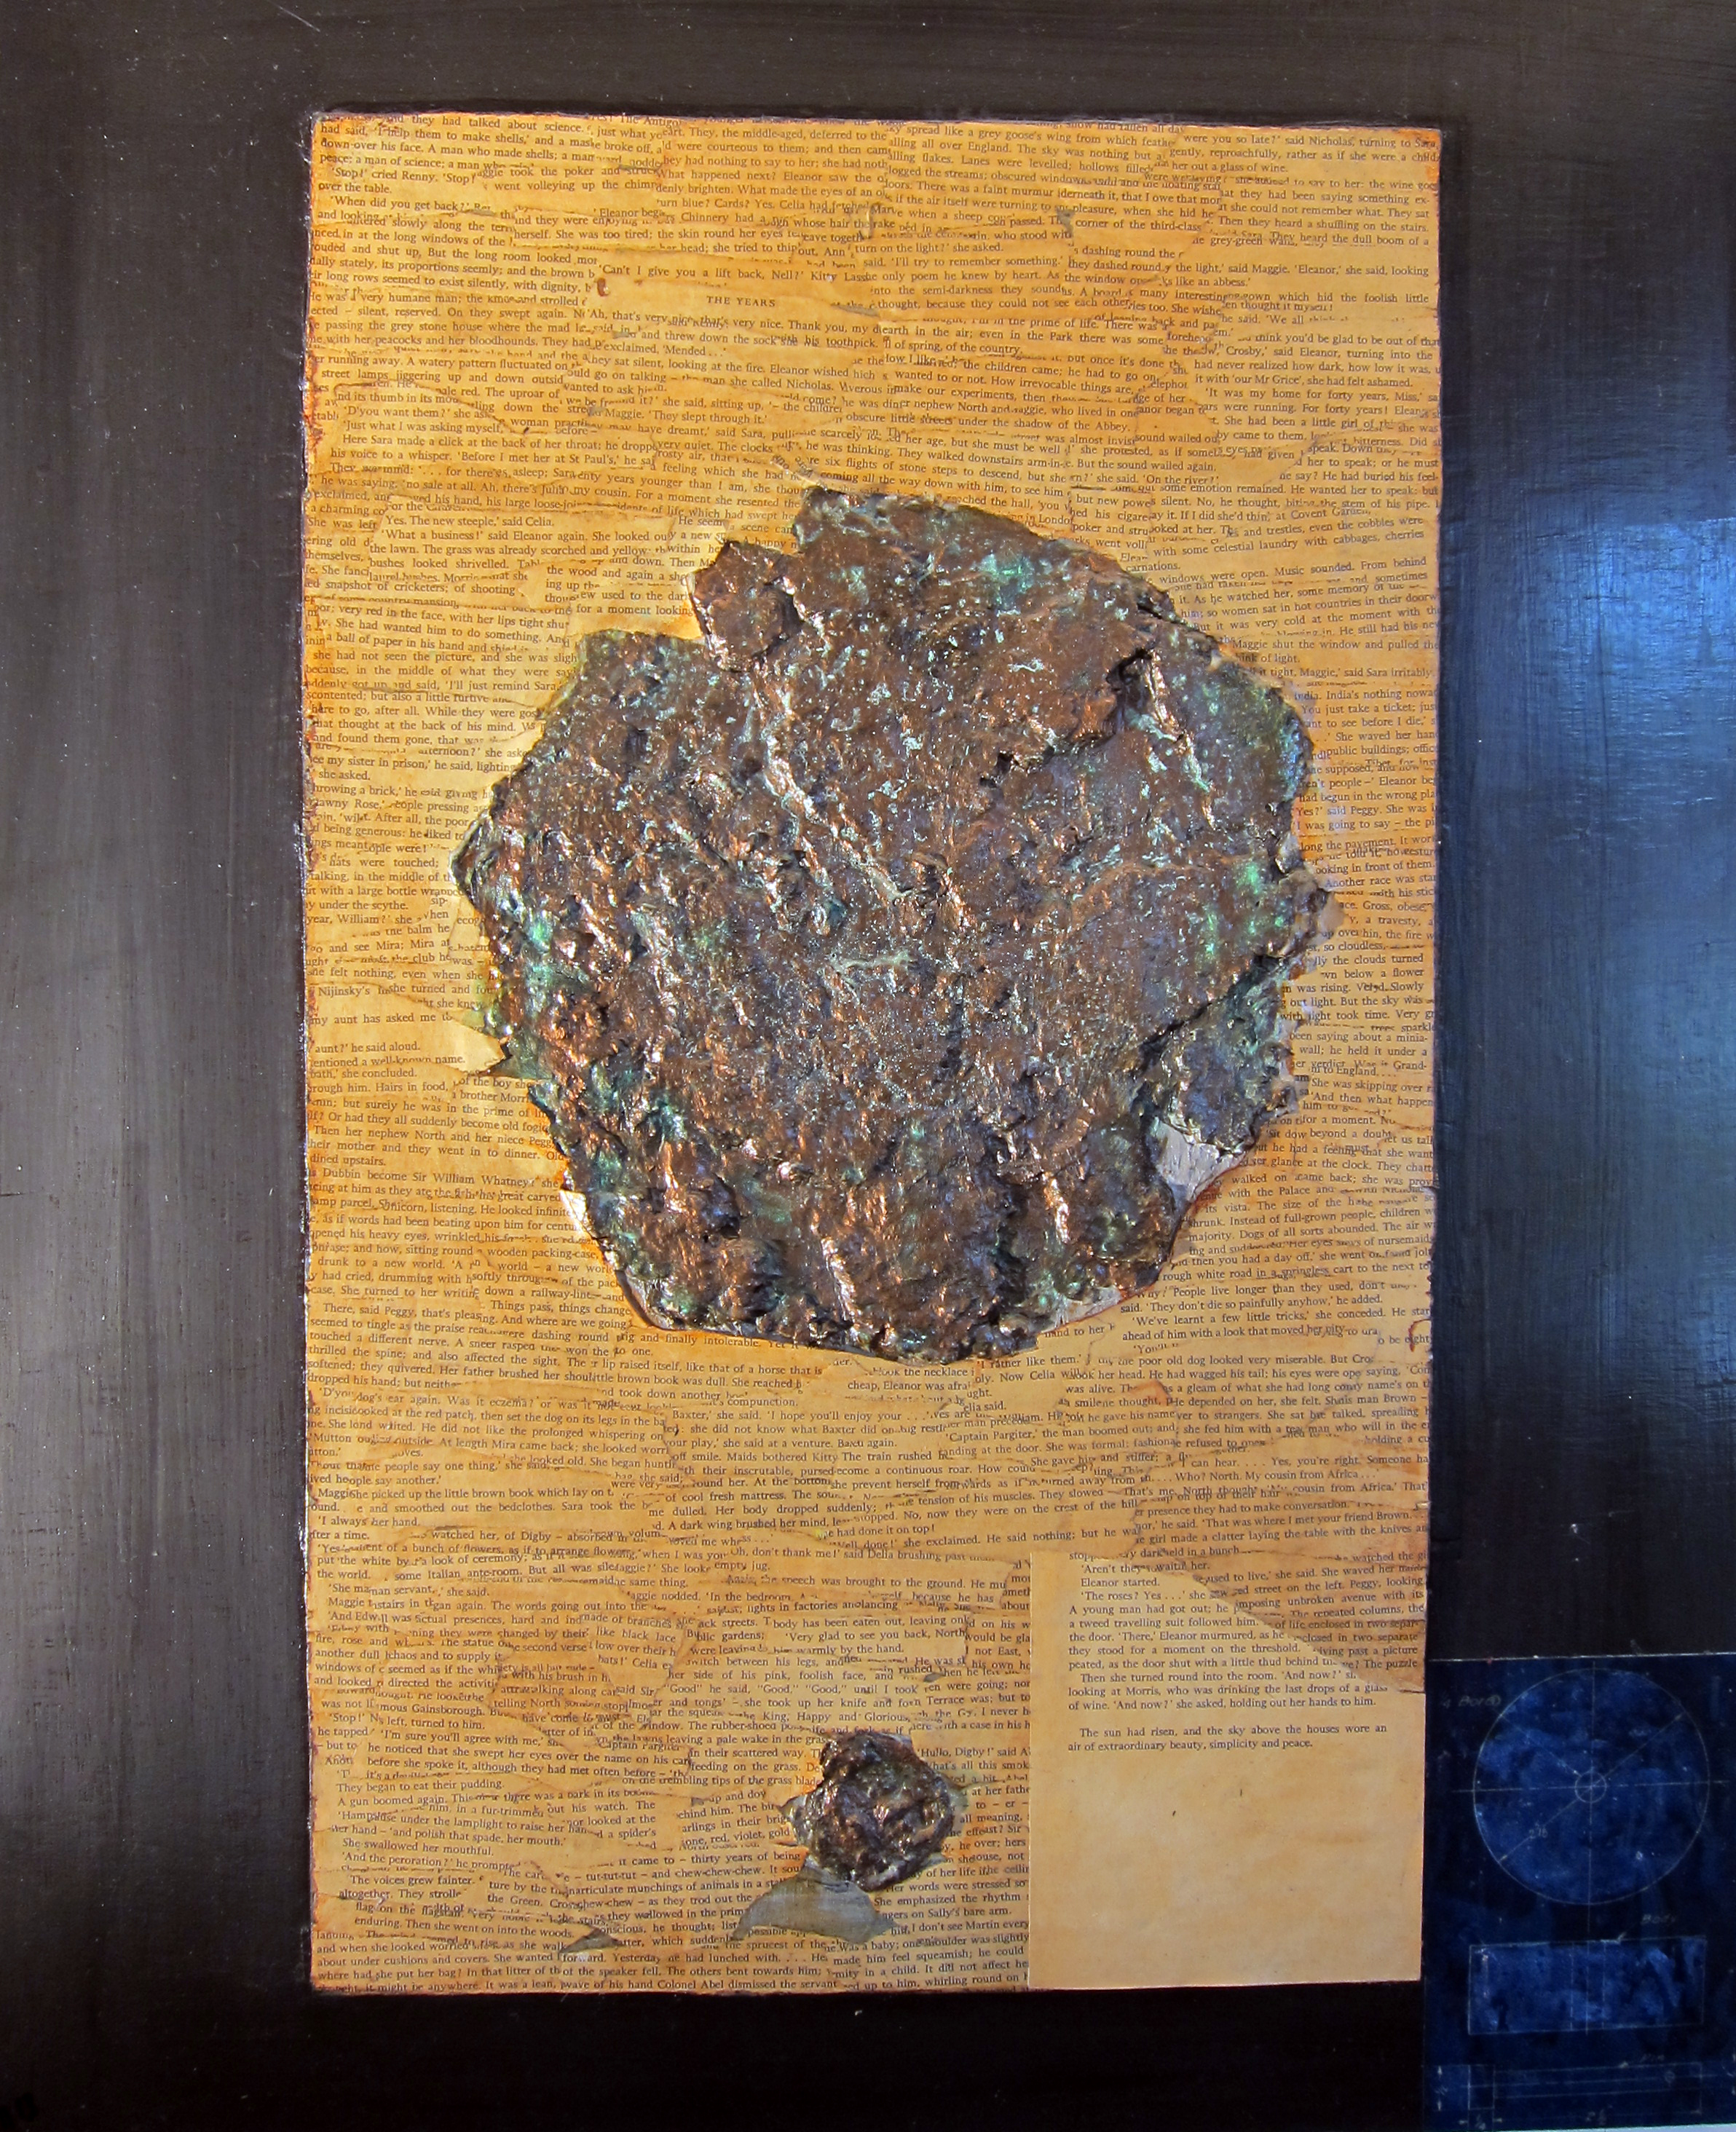 "Giovanni Spezzacatena - Rabideye Fine art ""Puzzling Evidence"" 20""x24""x1.5"" on  wood panel - collage + mixed media $225"